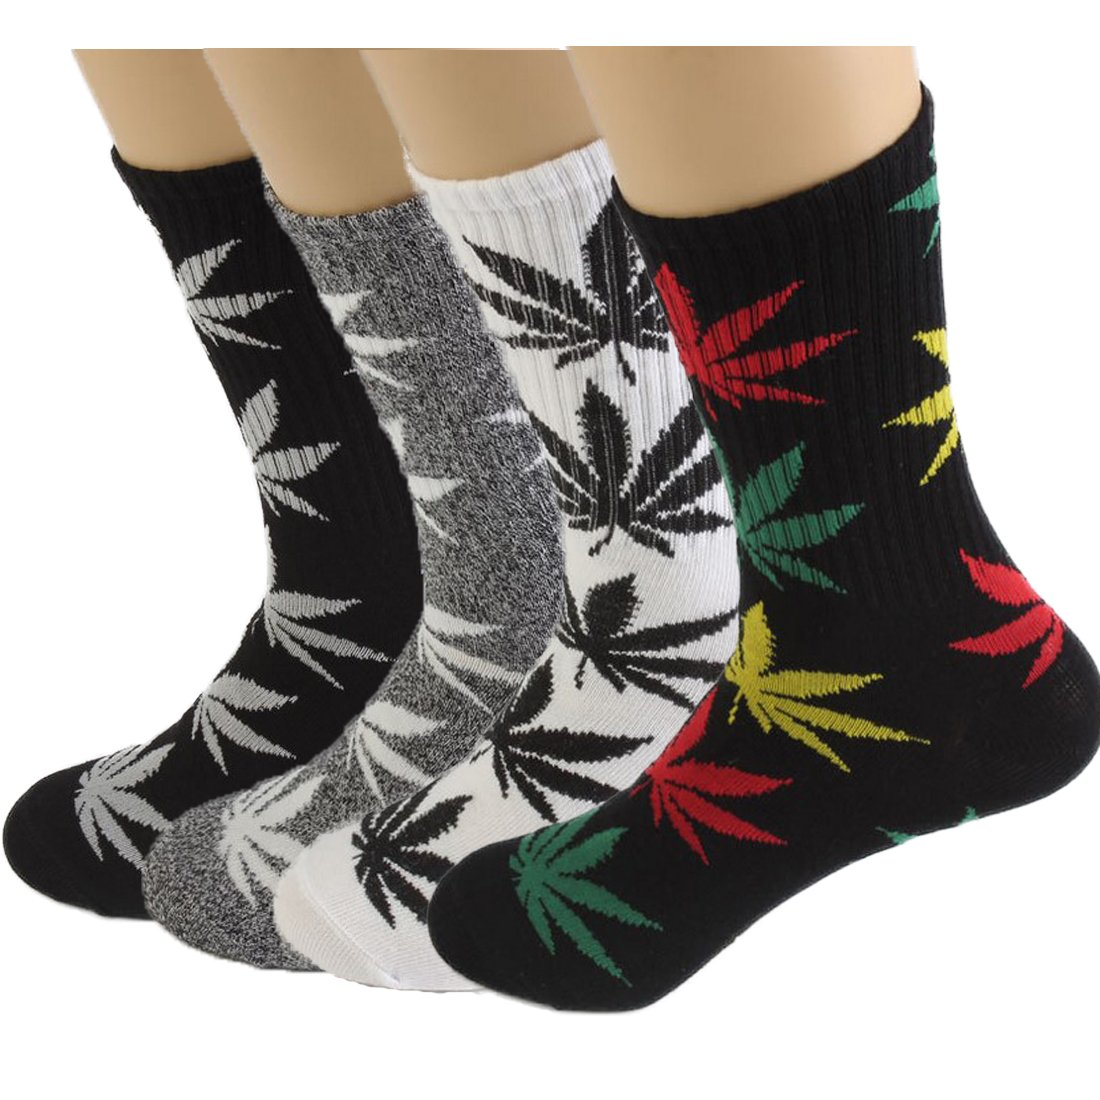 lucky ben 4pair-pack Marijuana Weed Leaf Printed Cotton High Socks, Mix Colors, fit for shoe size 7-11 (B match)